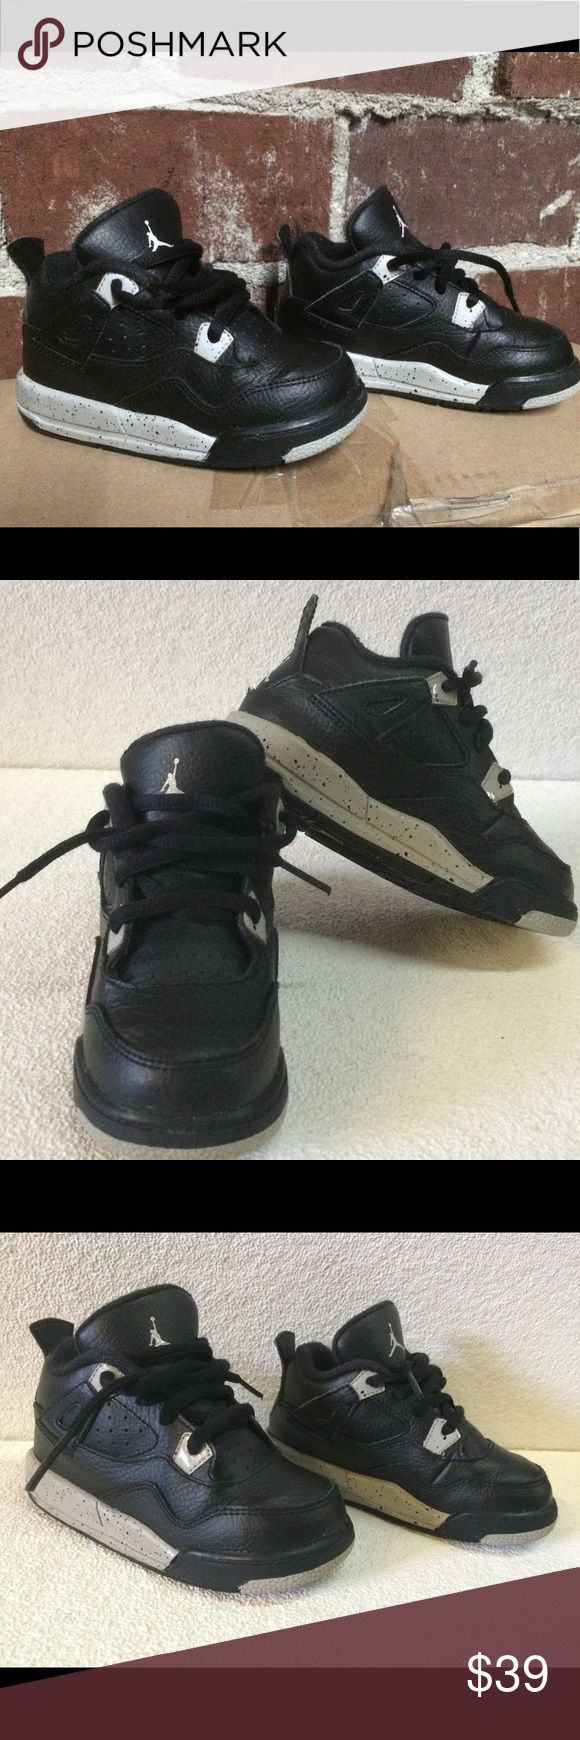 """Air Jordan 4 Retro LS BP size 8C Air Jordan 4 Retro LS BP    Nike Air Jordan 4 Retro LS BP """"Oreo""""  Size: 8C  Colorway: Black/Tech Grey-Black  Year of Release: 2015  Condition: Used with out Box.    Great pair of Air Jordan Retro basketball sneakers.100% authentic.  Used in good condition. Price not negotiable.   Please see all pictures for details and condition on this item.  Thanks for looking and please check out my others listings. Jordan Shoes Sneakers"""